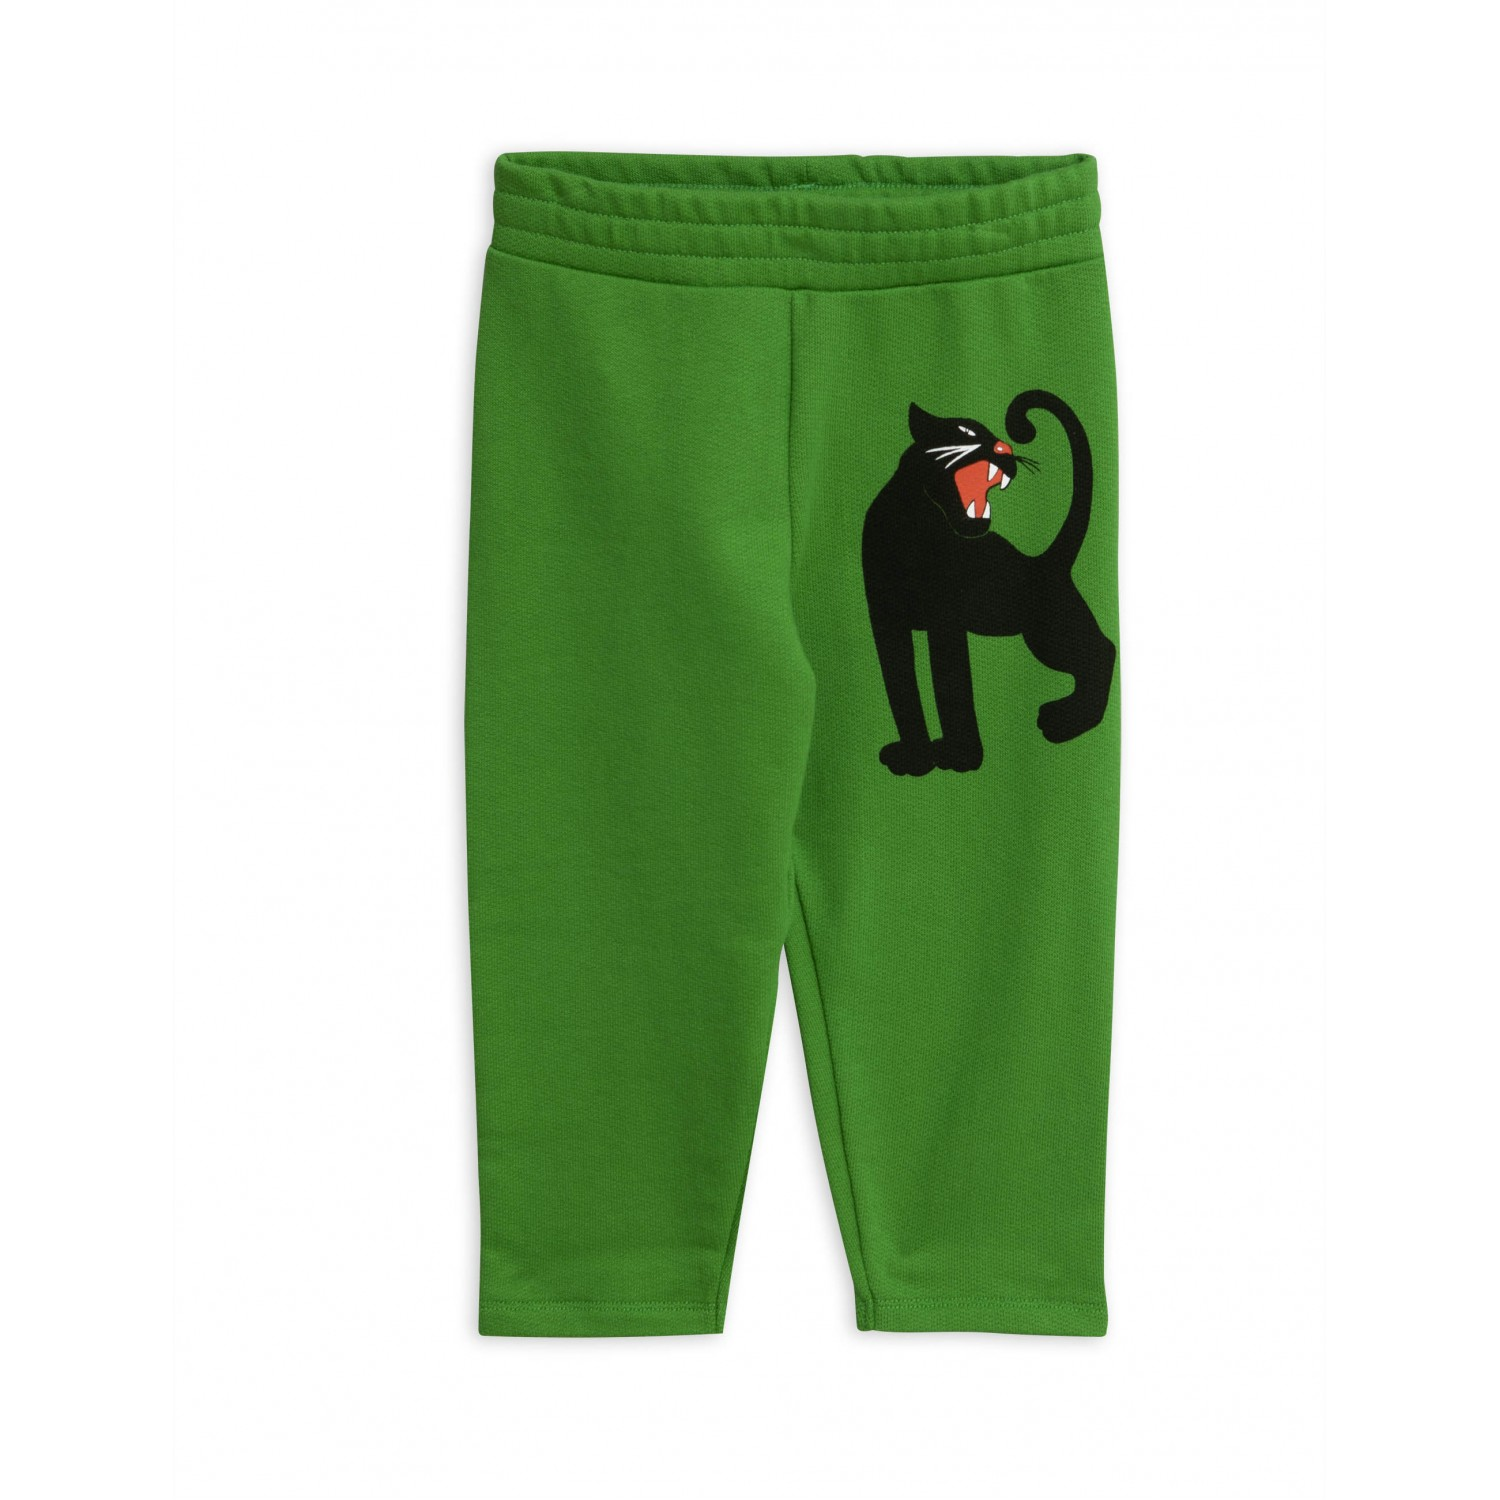 PANTHER SWEATPANTS